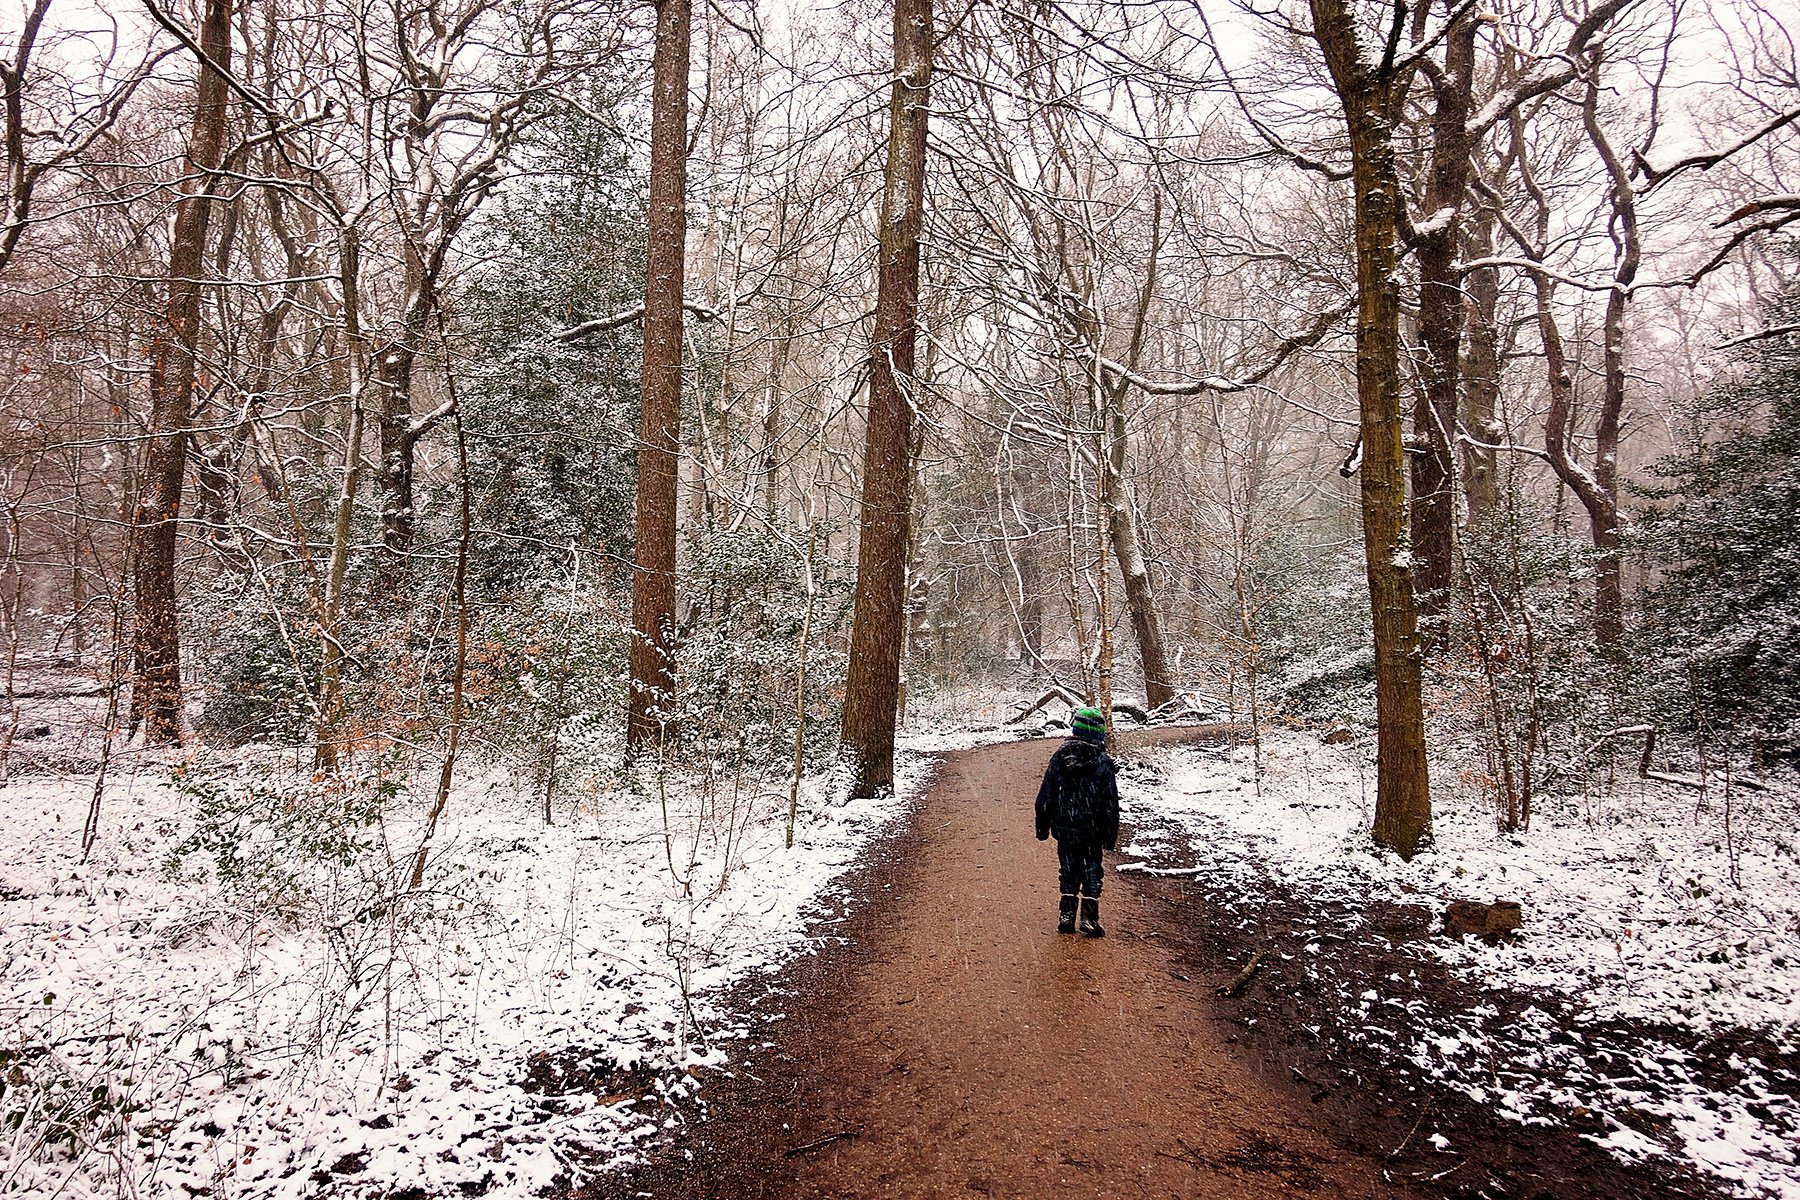 Snowy Ecclesall Woods in Sheffield